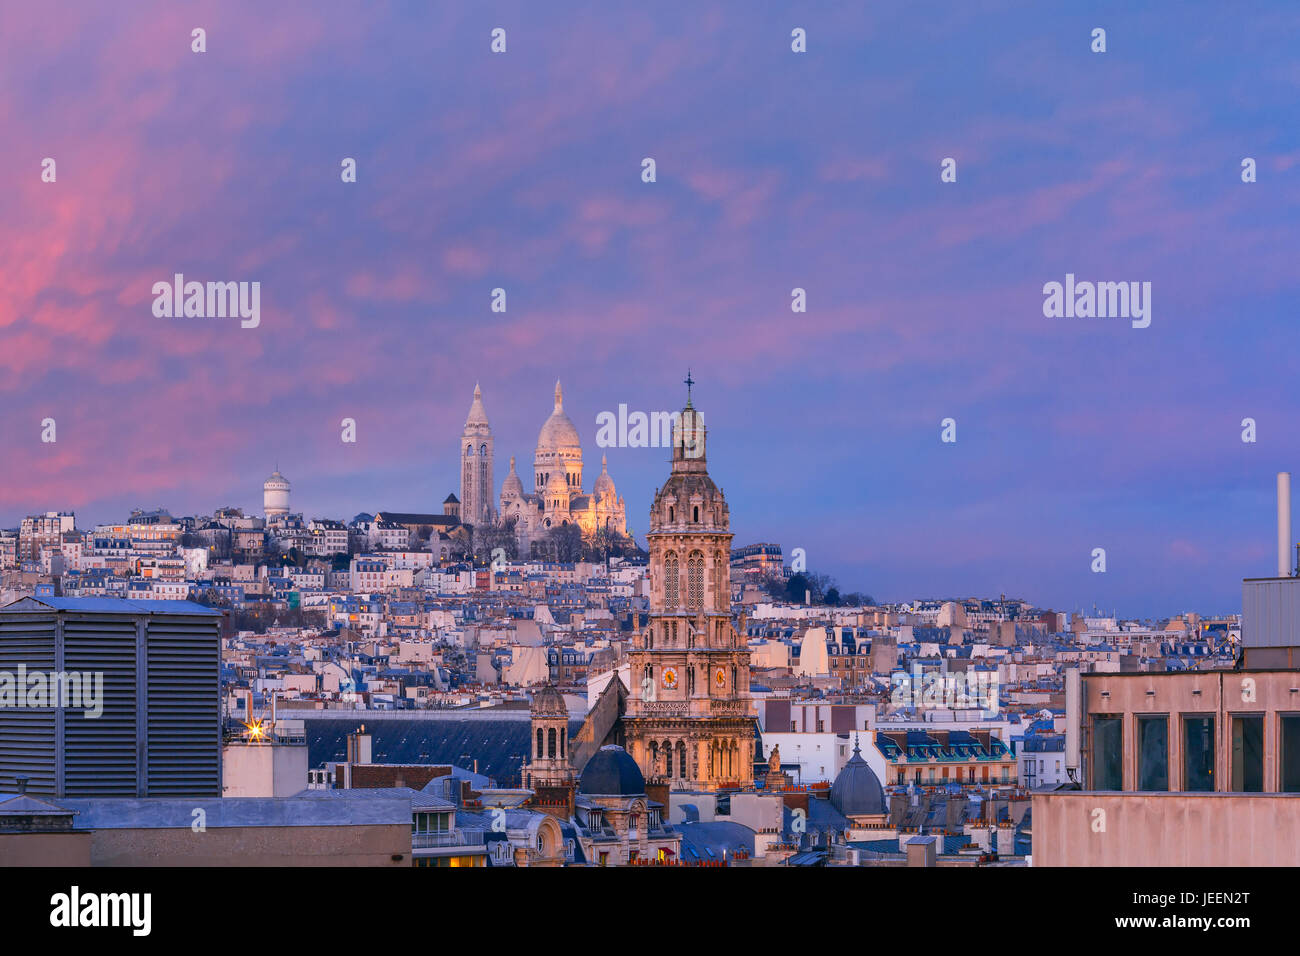 Sacre-Coeur Basilica at sunset in Paris, France Stock Photo